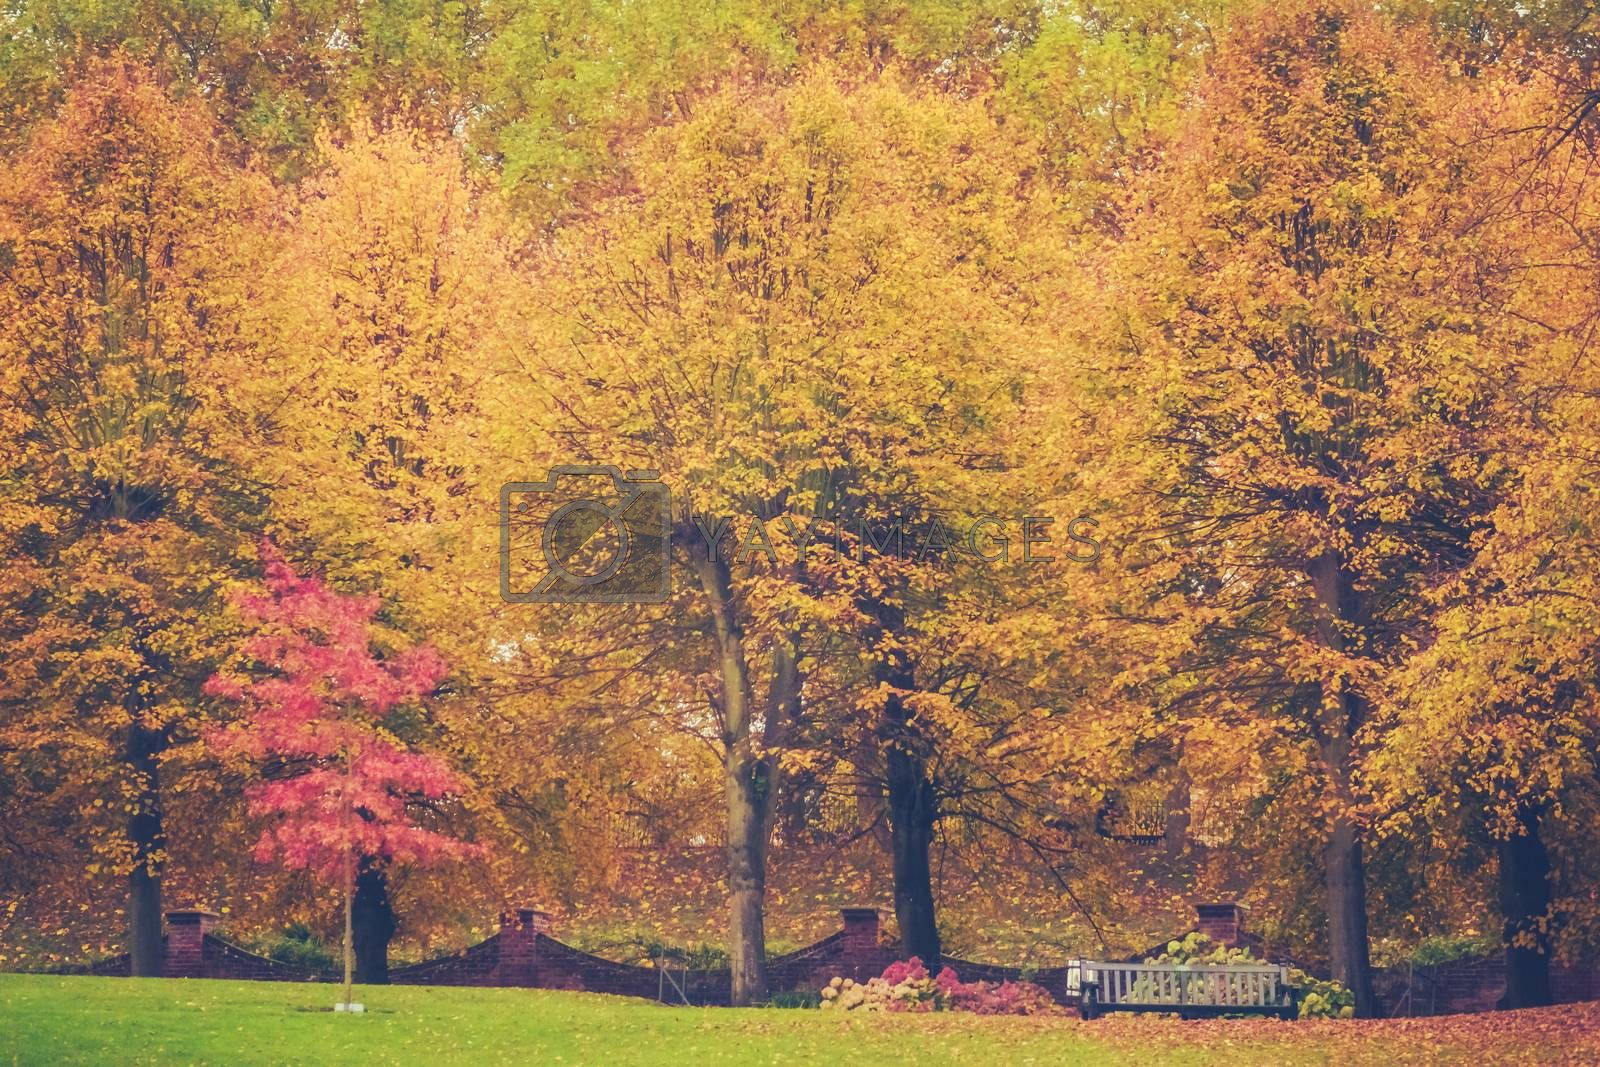 Red and yellow leaves on trees on an autumn day in a park